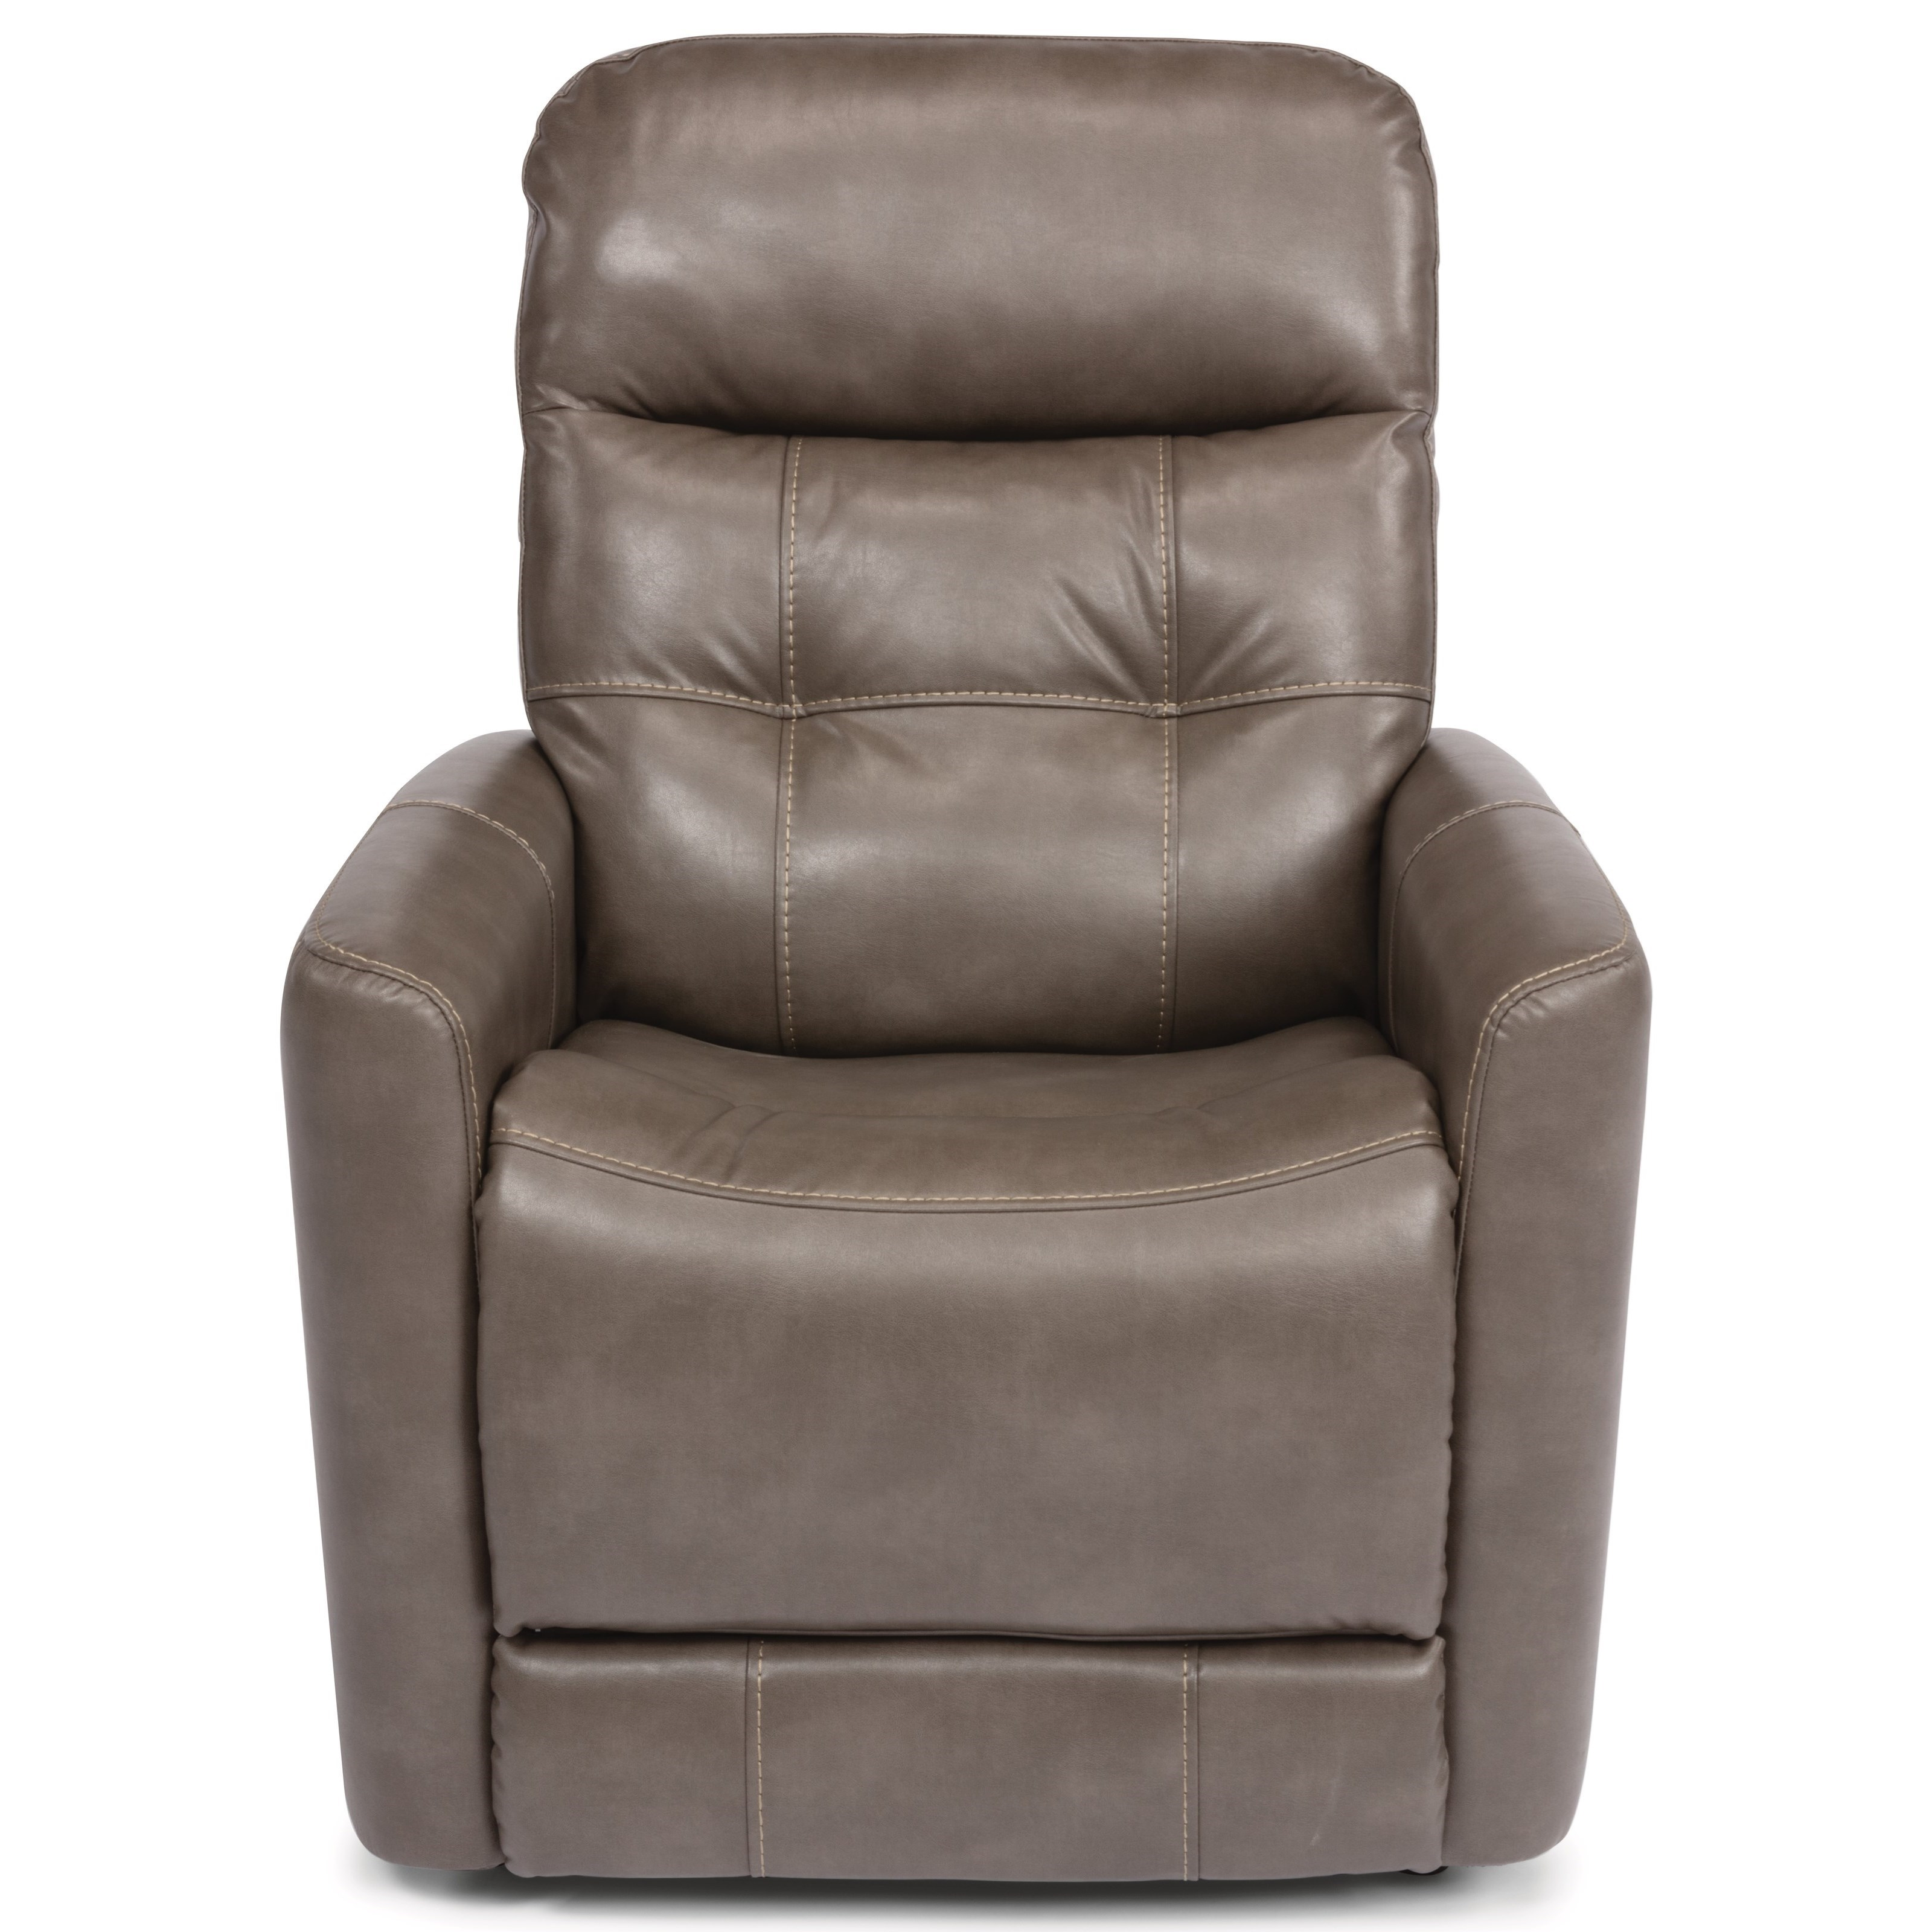 Latitudes - Kenner Power Lift Recliner with Power Headrest by Flexsteel at Miller Waldrop Furniture and Decor